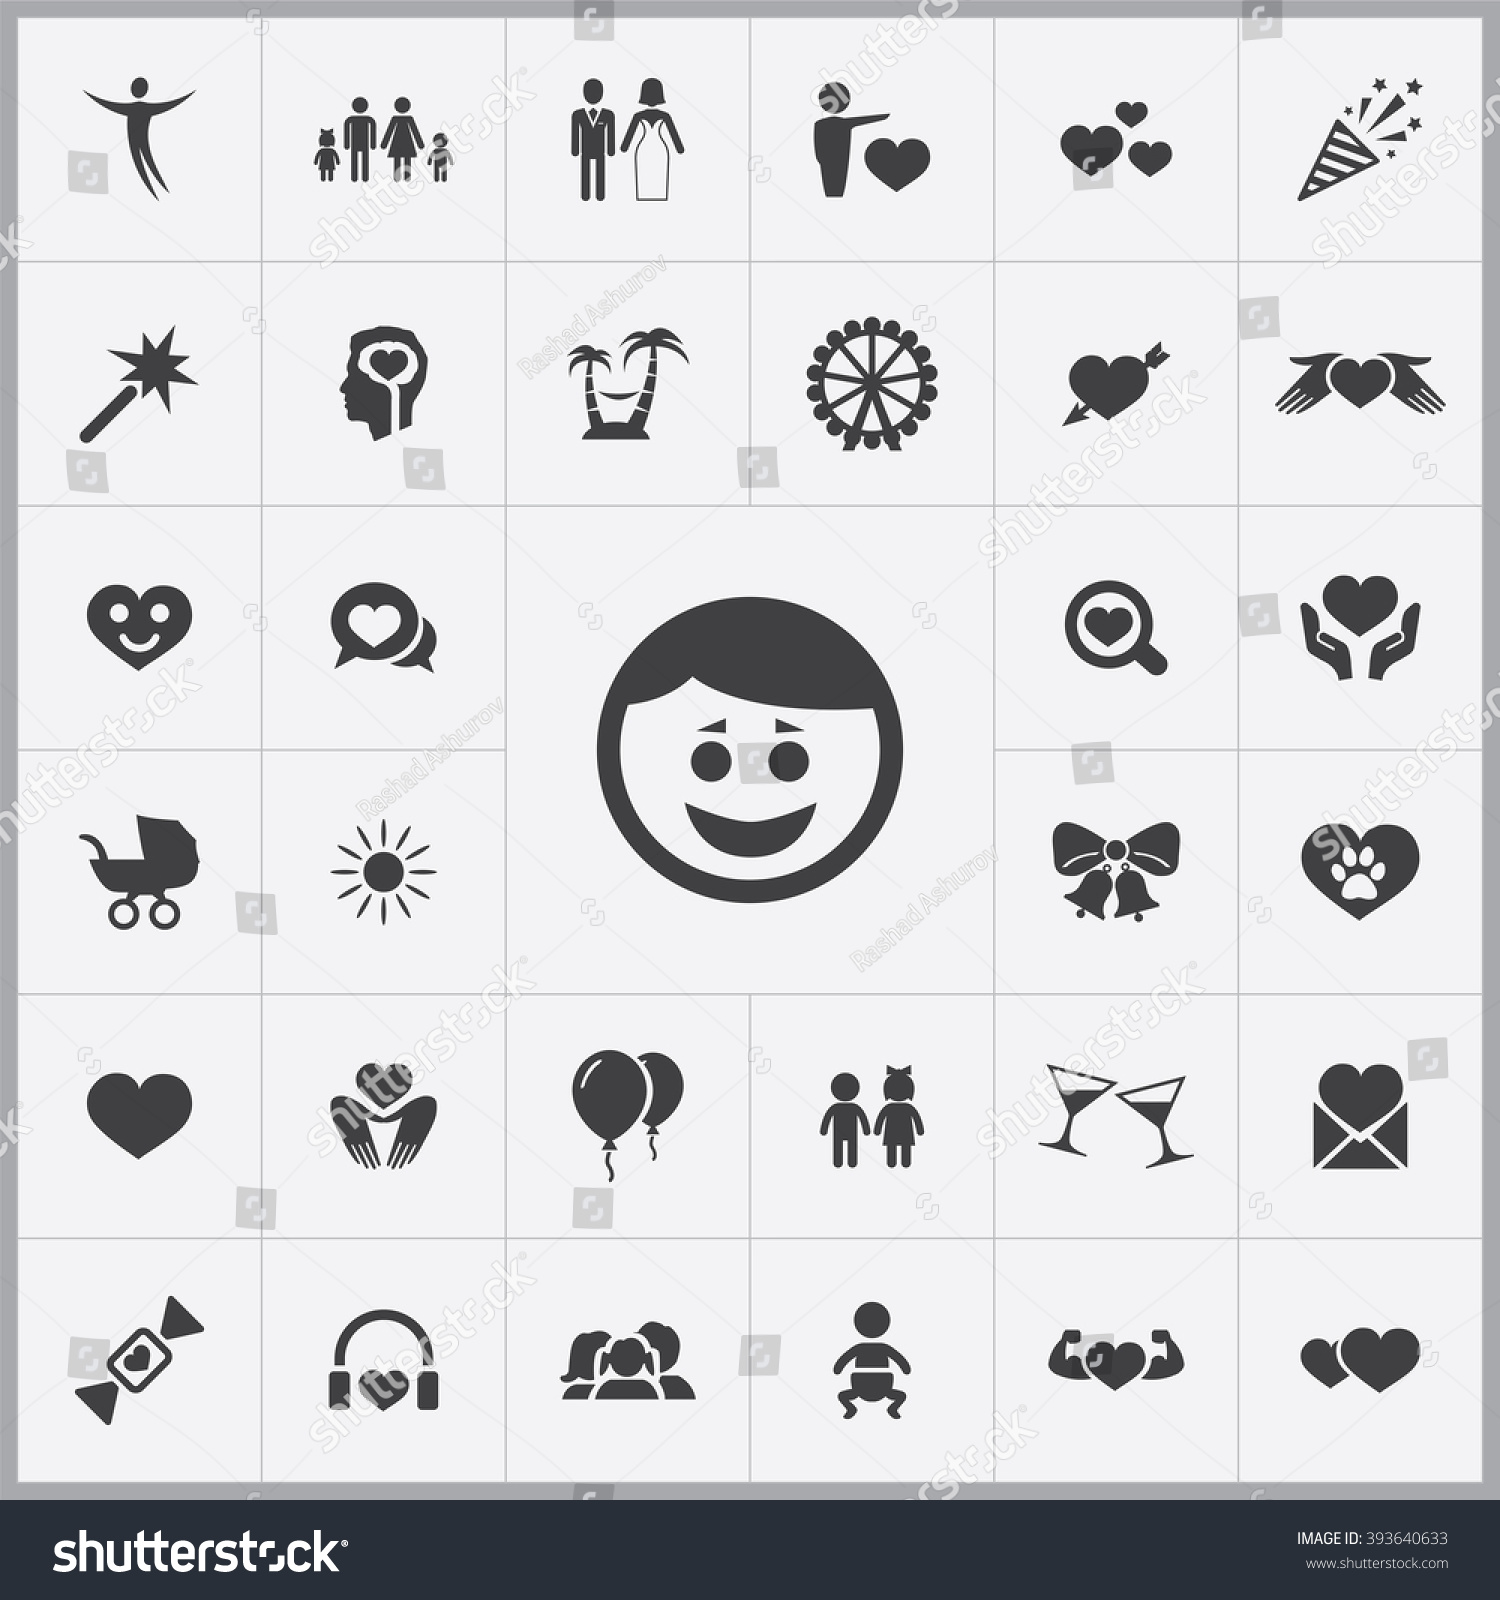 Universal Music Group Stock Quote: Simple Happiness Icons Set Universal Happiness Stock